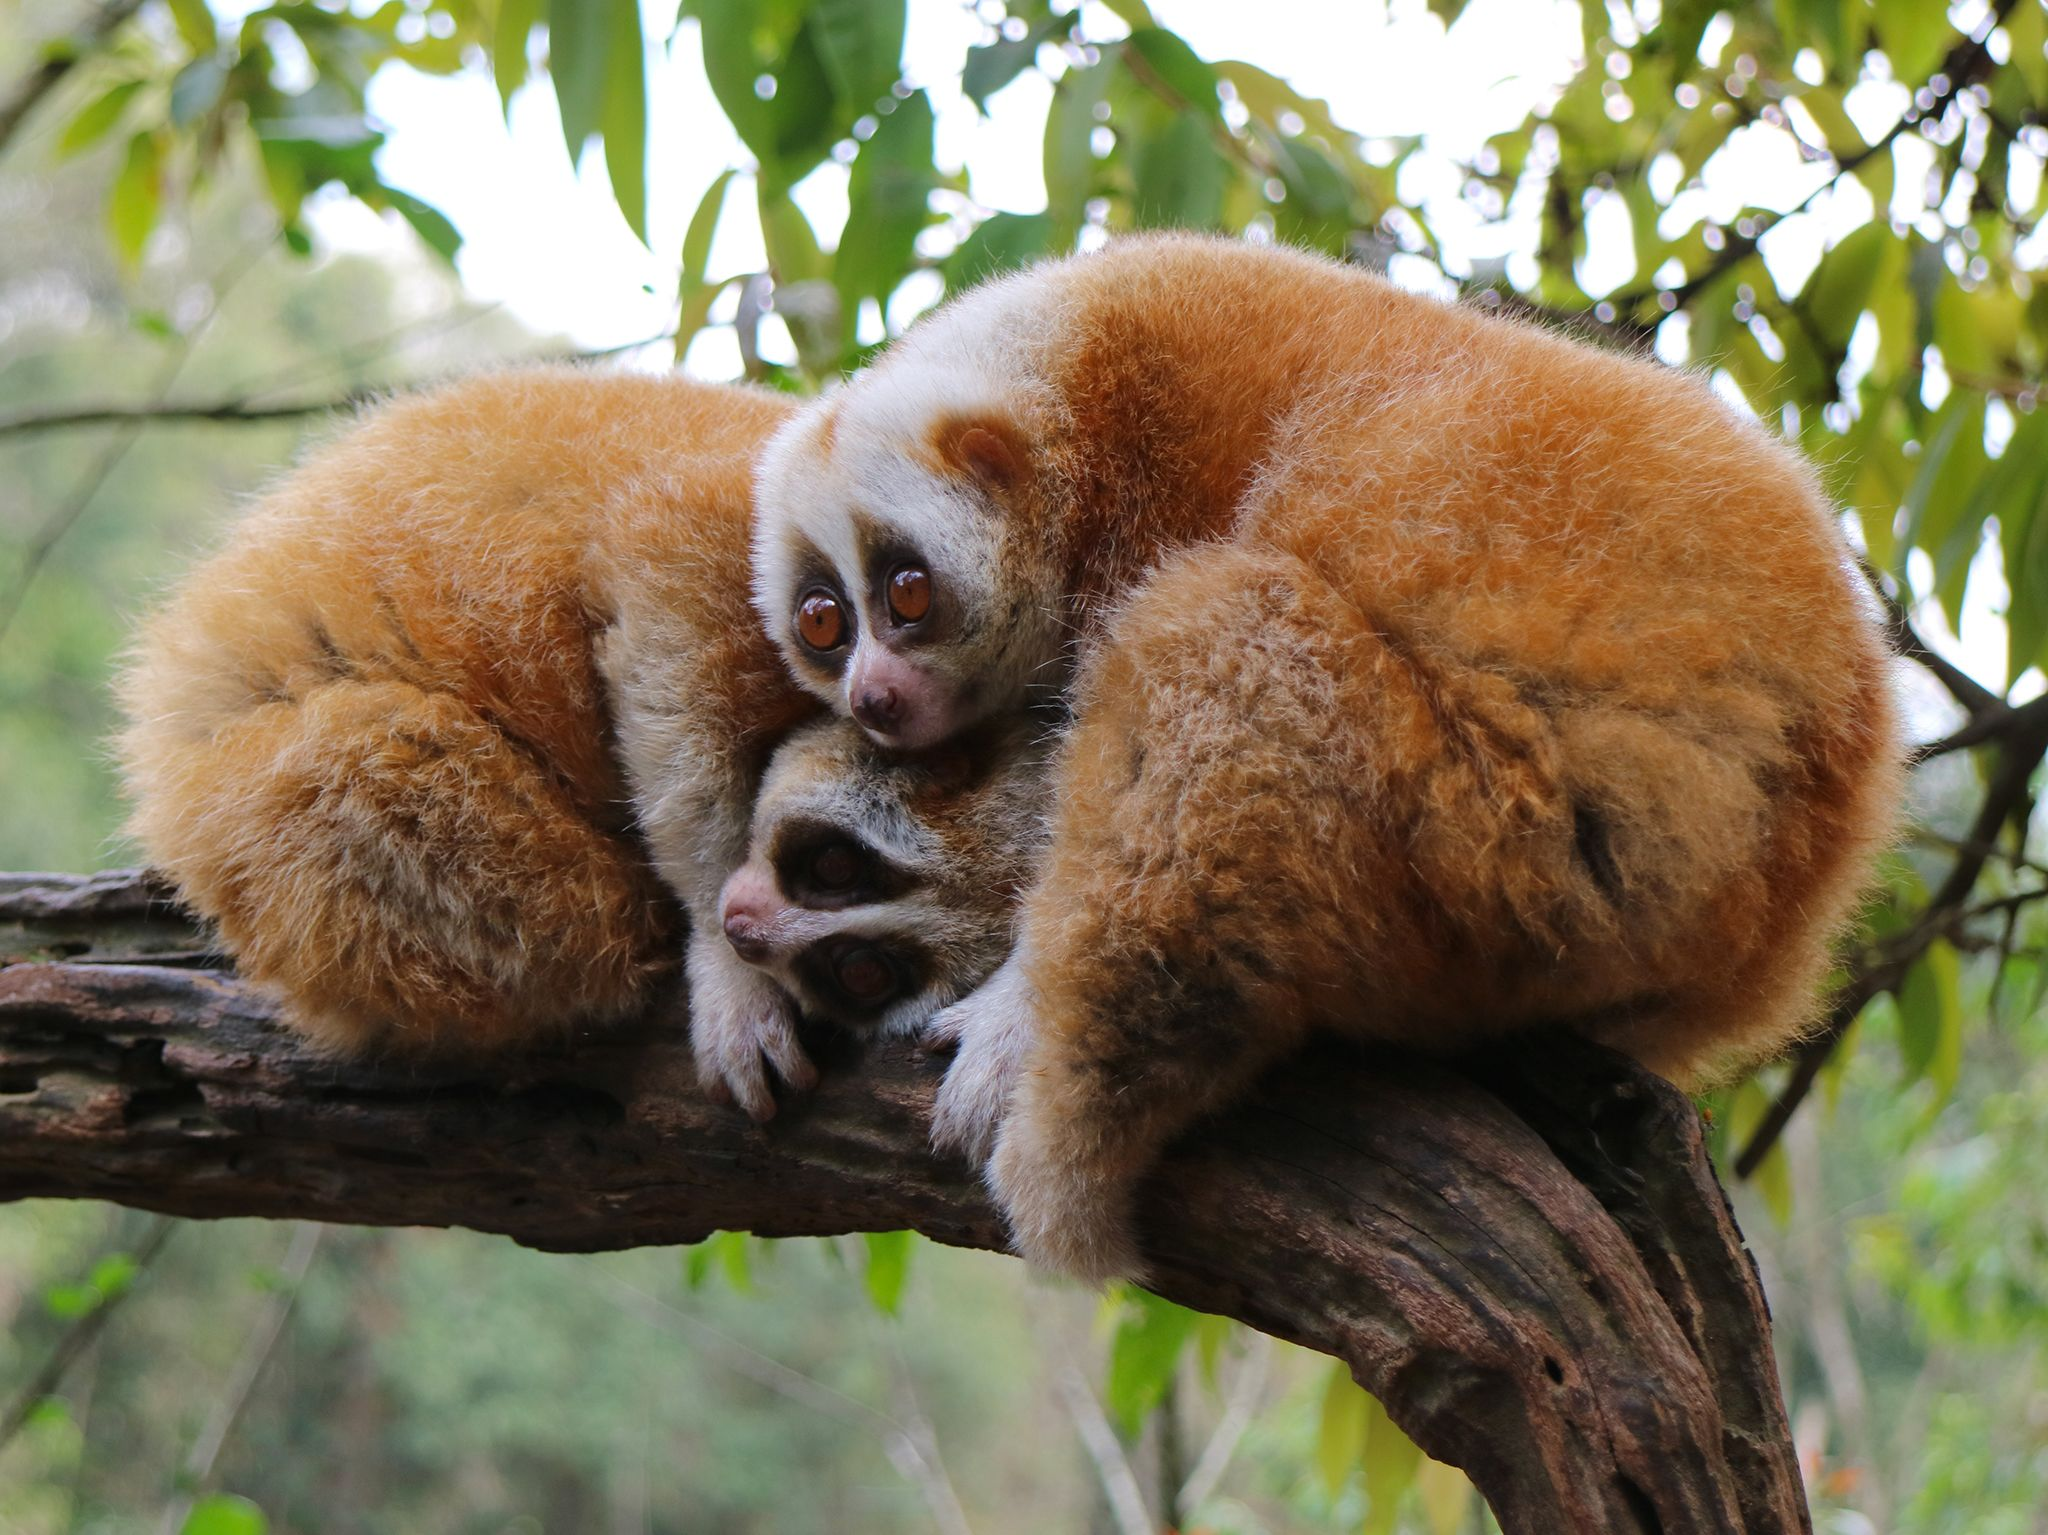 Pu'er Sun River National Park, Yunnan:  2 Slow lorises waking up at dusk.  Lorises are the only... [Photo of the day - June 2019]